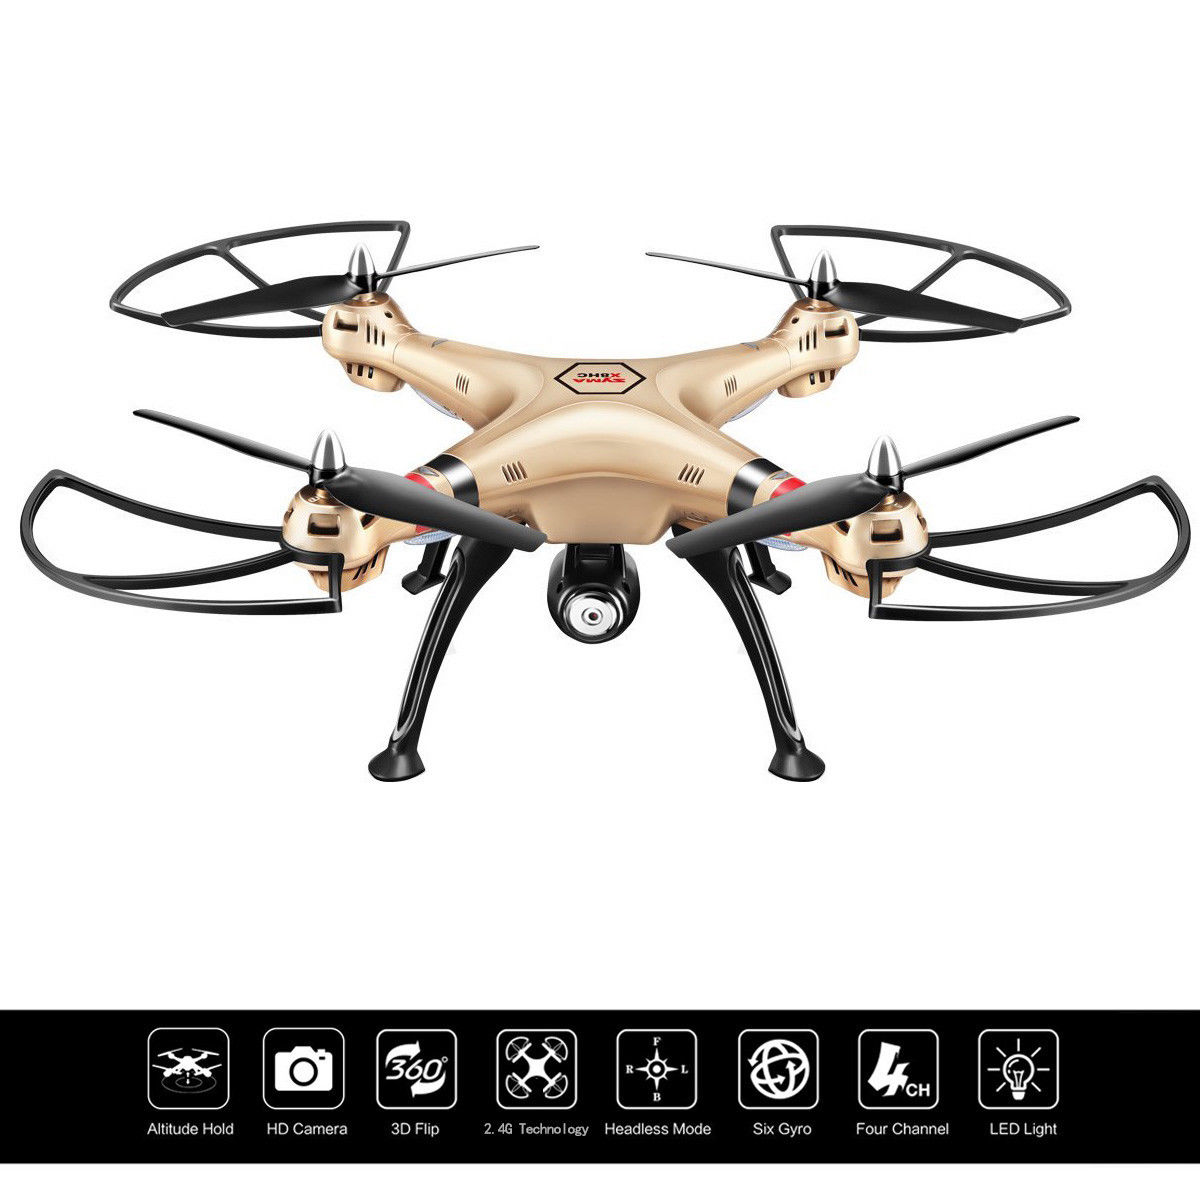 Costway Syma X8HC 2.4G 4CH 6-Axis Gyro RC Quadcopter Drone 2MP HD Camera UAV RTF UFO by Costway